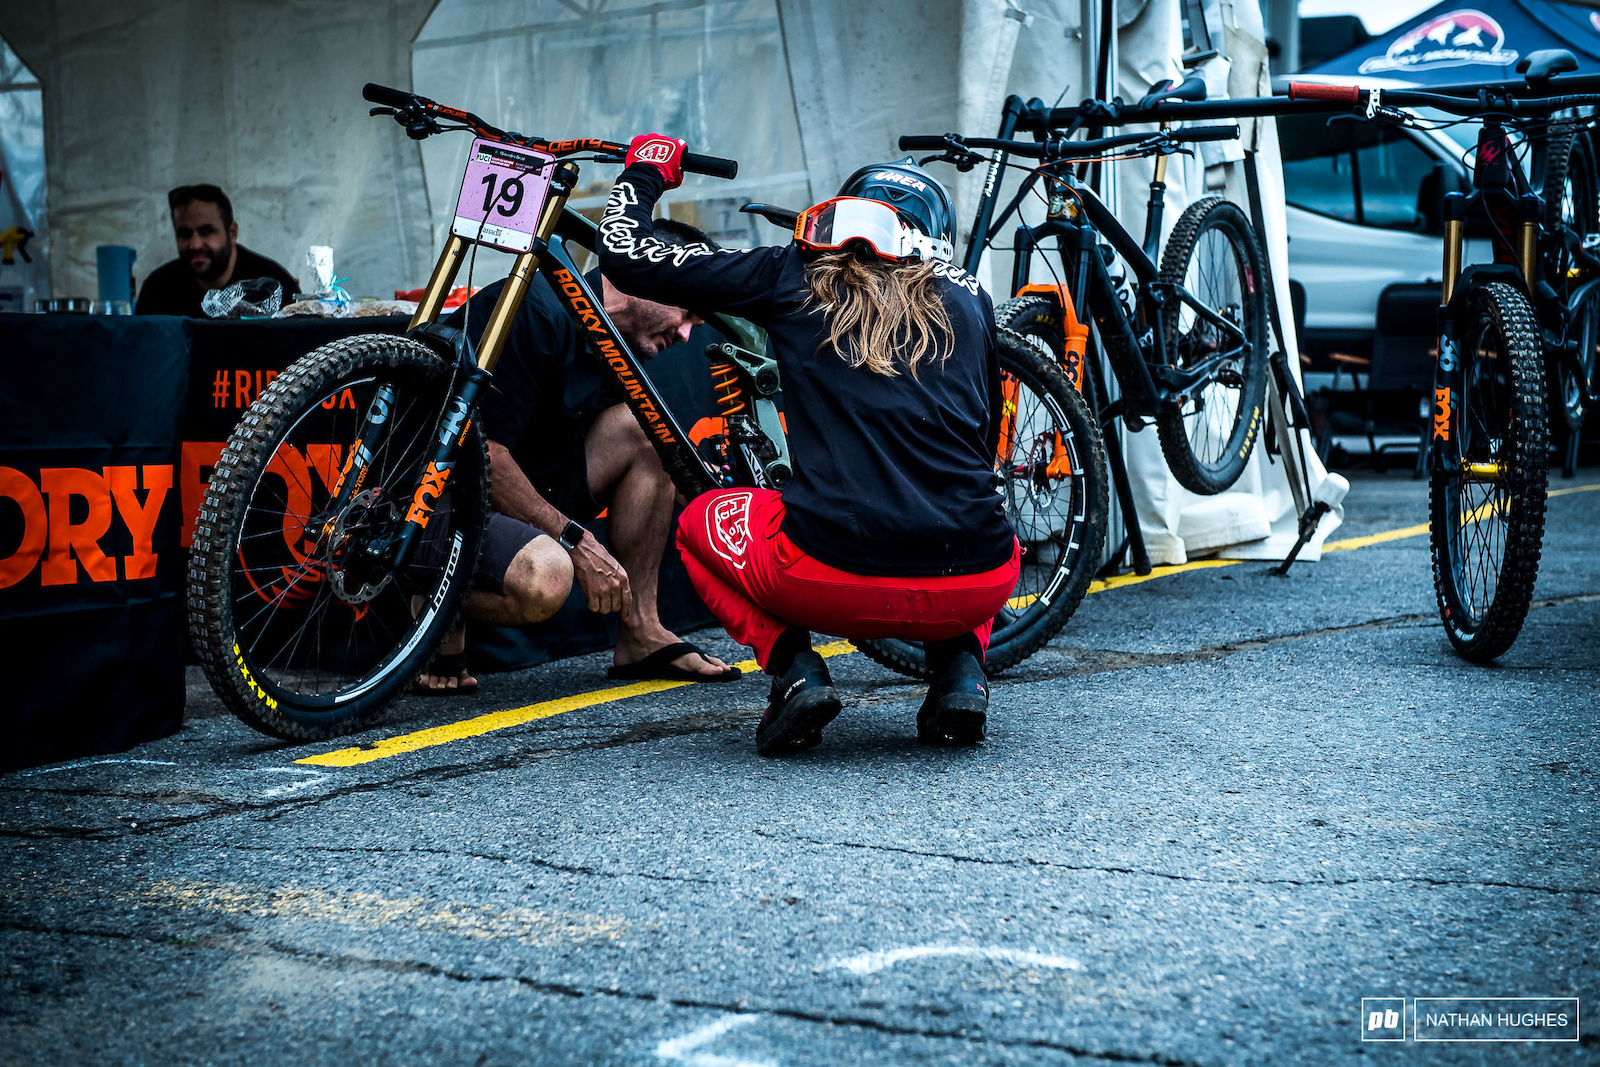 The Canadian champ Vaea Verbeeck getting a rear shock tune-up from Jordi Cotes.